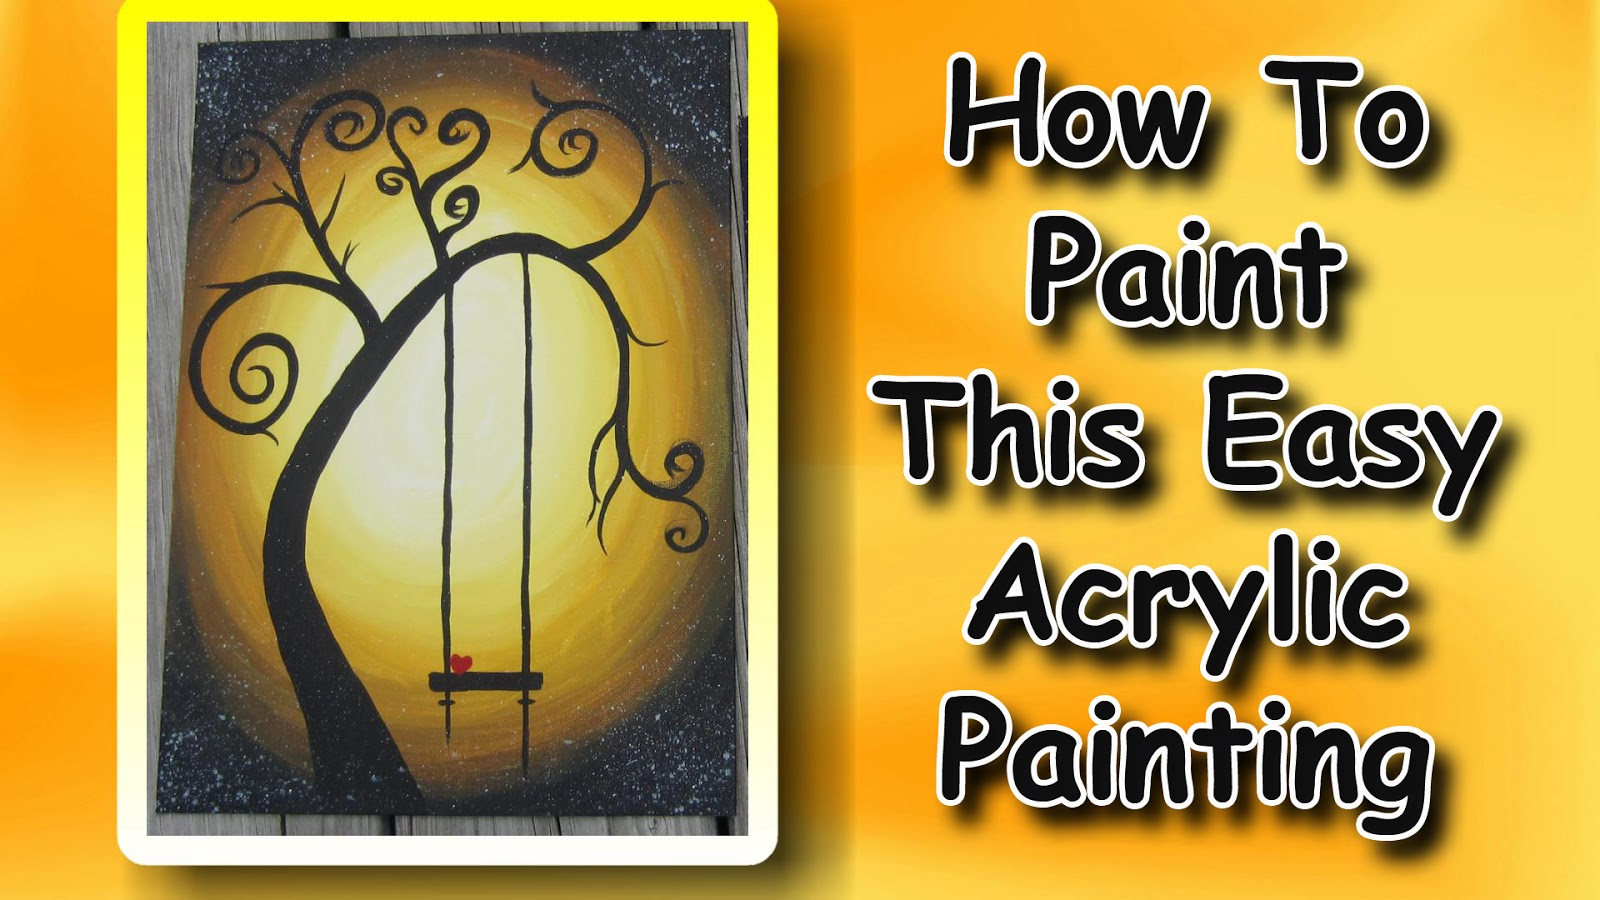 Easy Painting Easymeworld How To Paint An Easy Acrylic Painting For Beginners